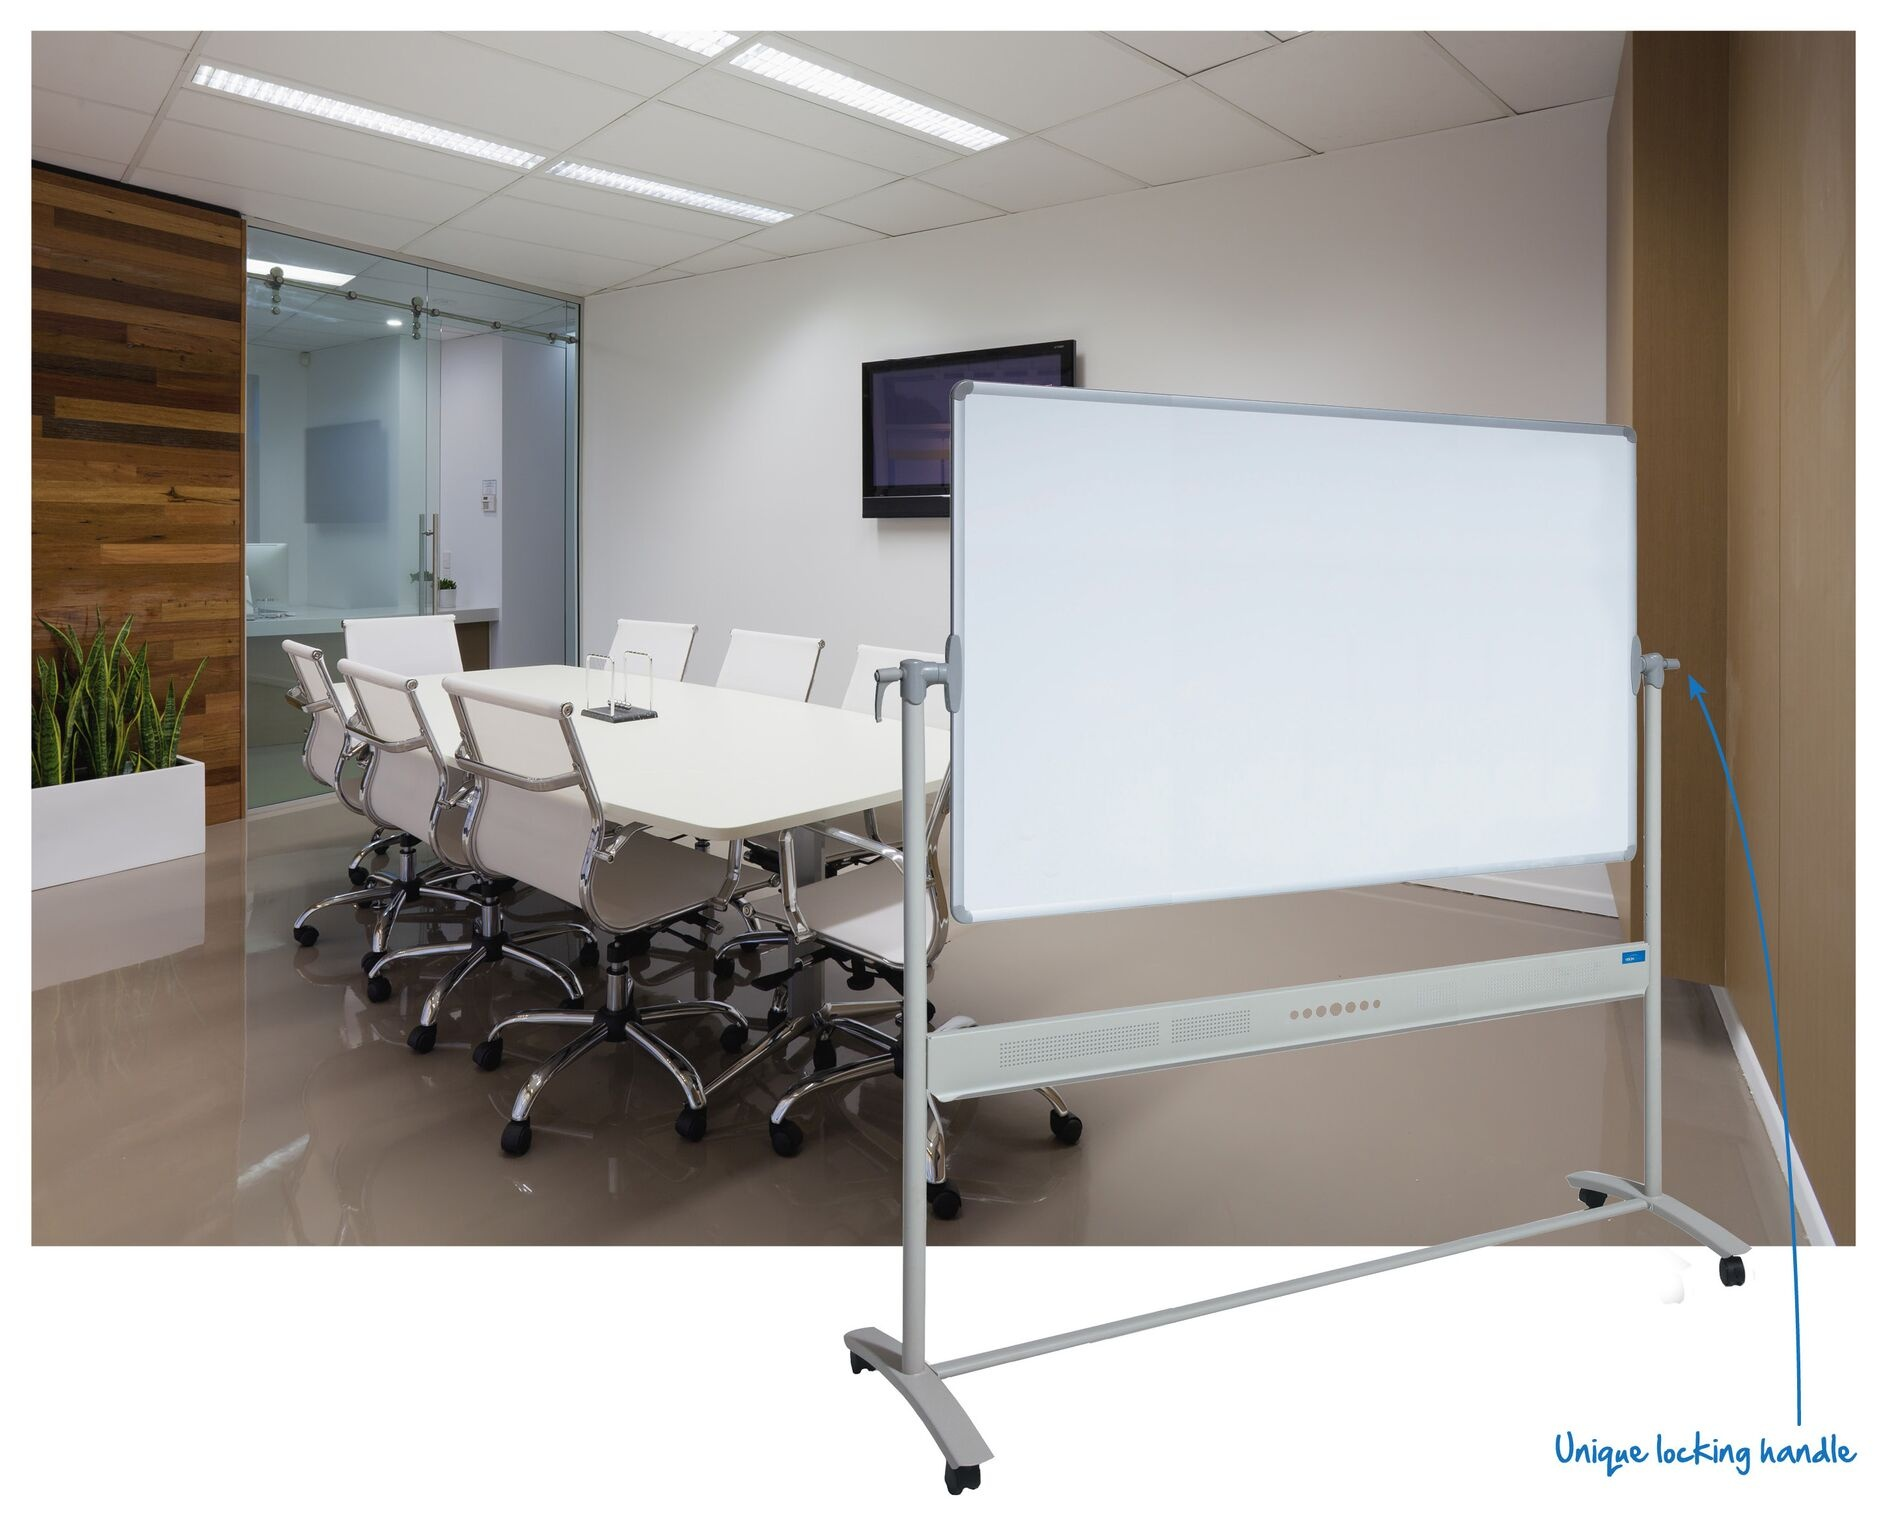 Commercial/ Porcelain Mobile Whiteboard